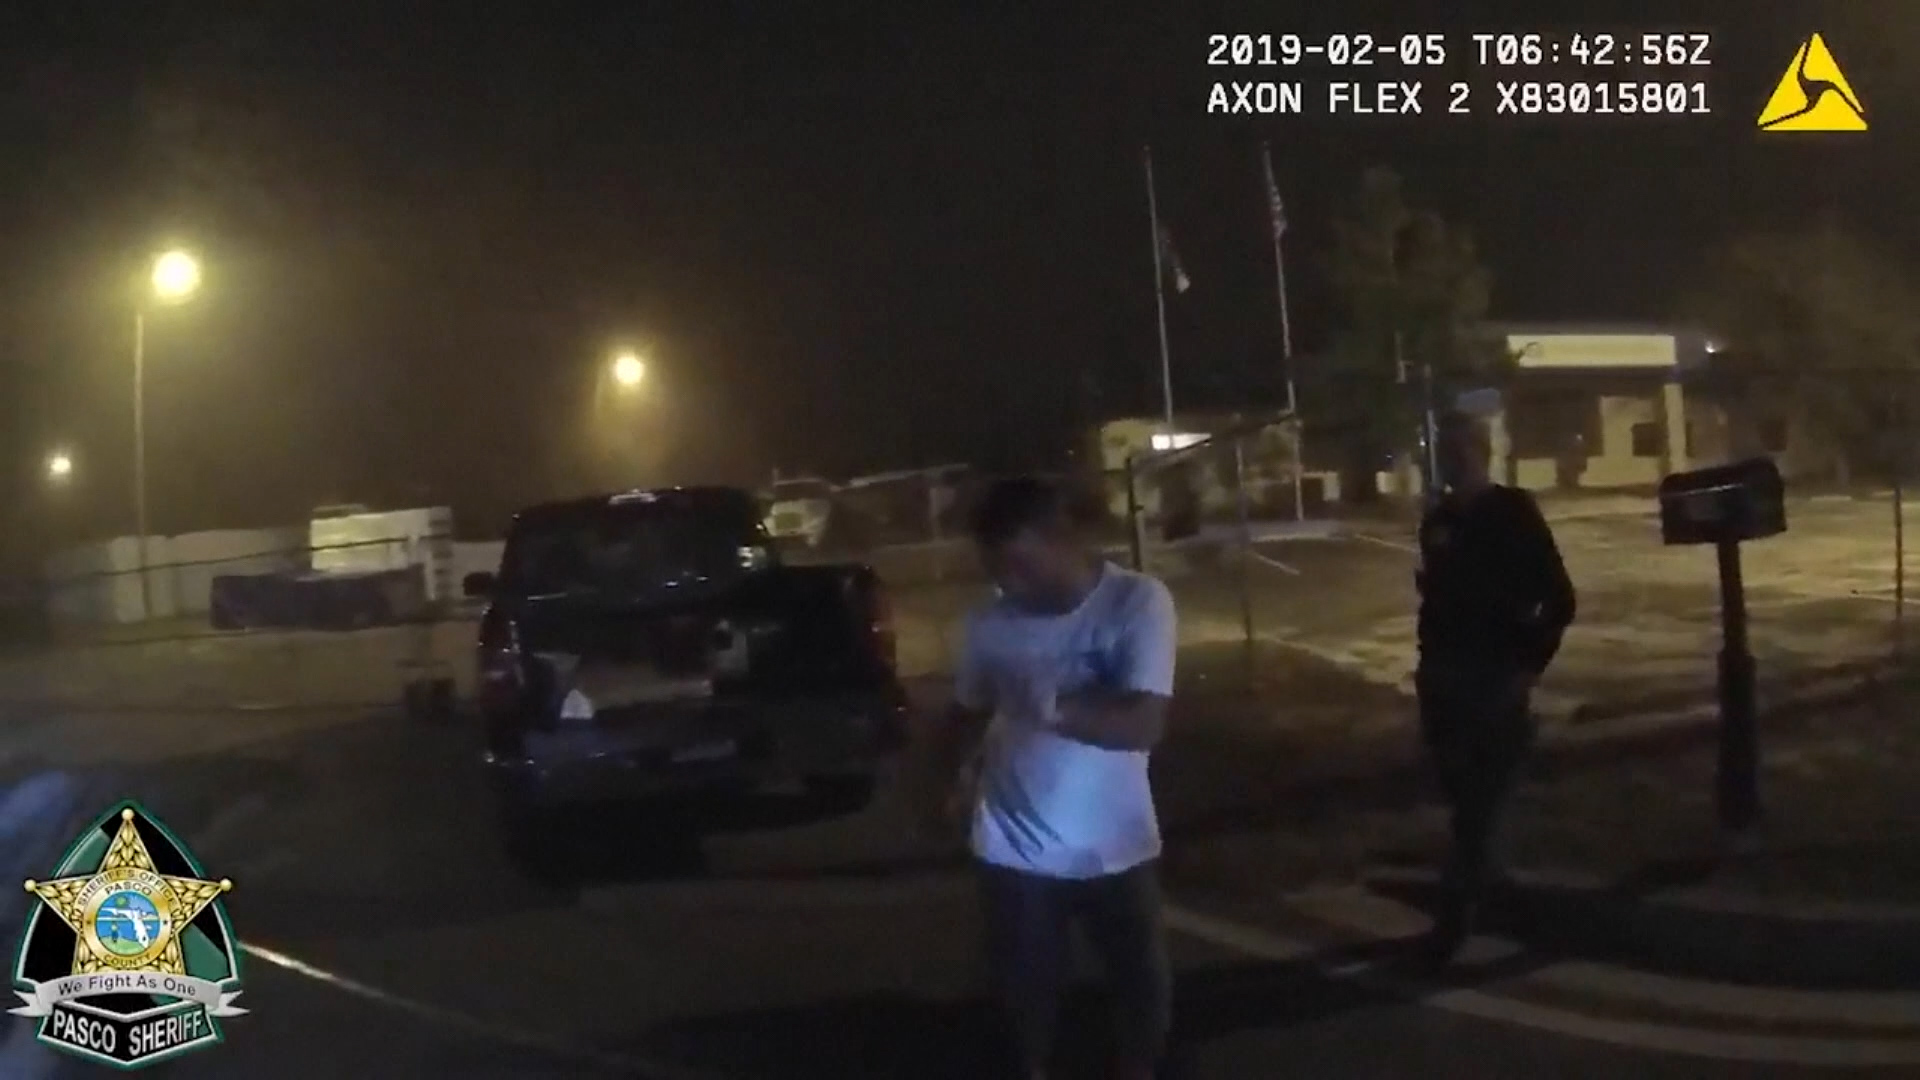 Man dances his way through roadside sobriety test, charged with DUI